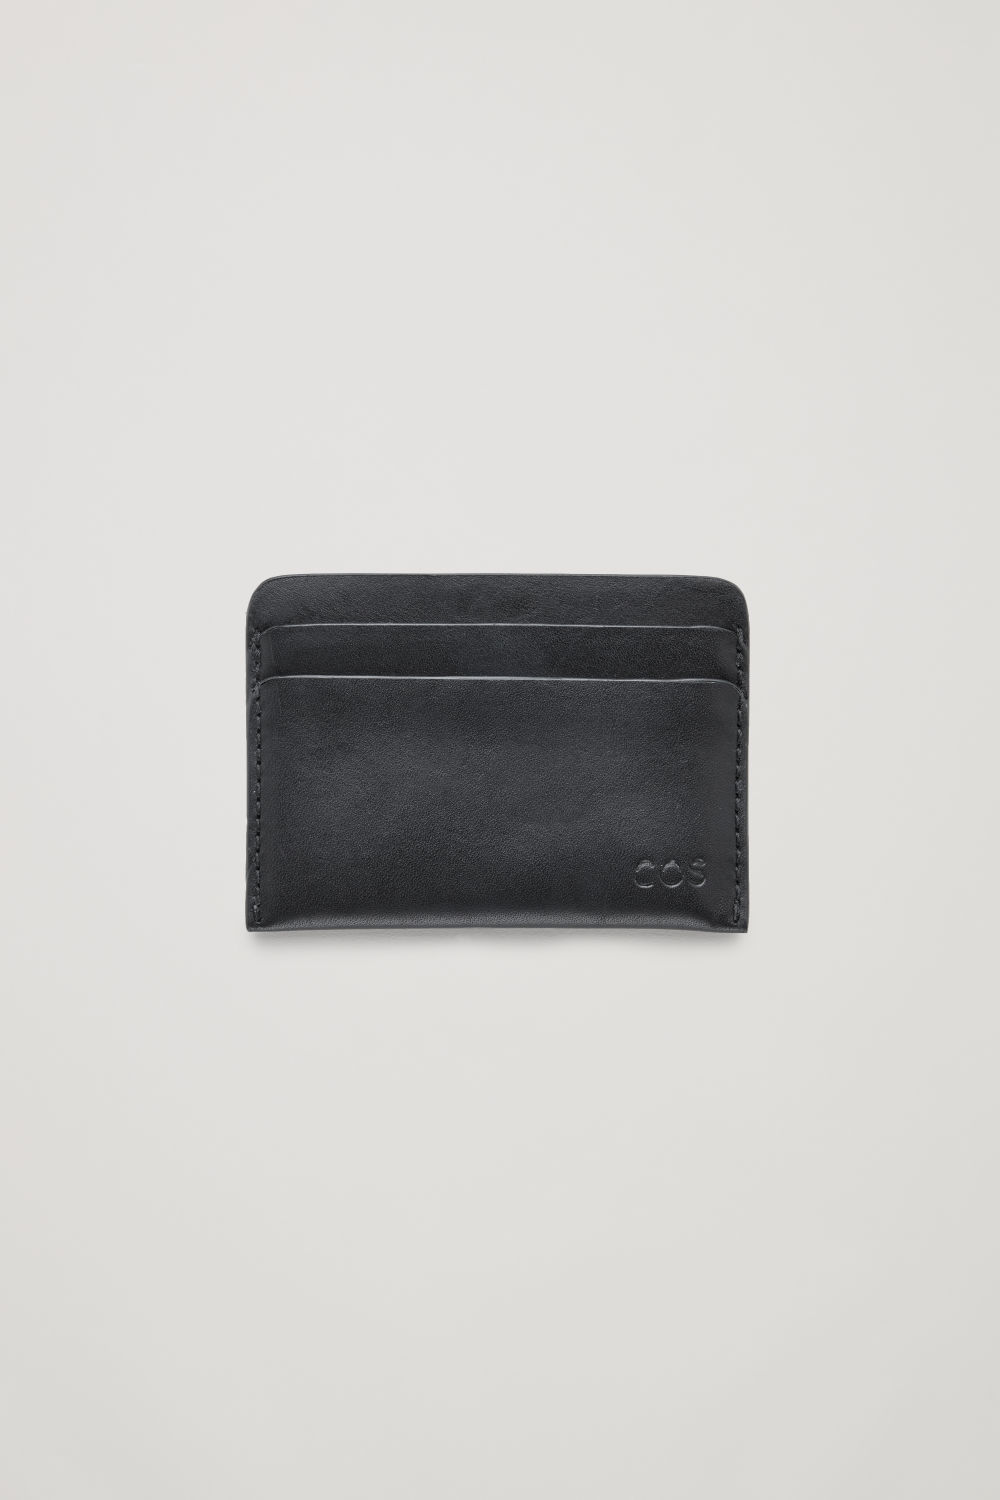 코스 COS ROUND-EDGED LEATHER CARDHOLDER,Black